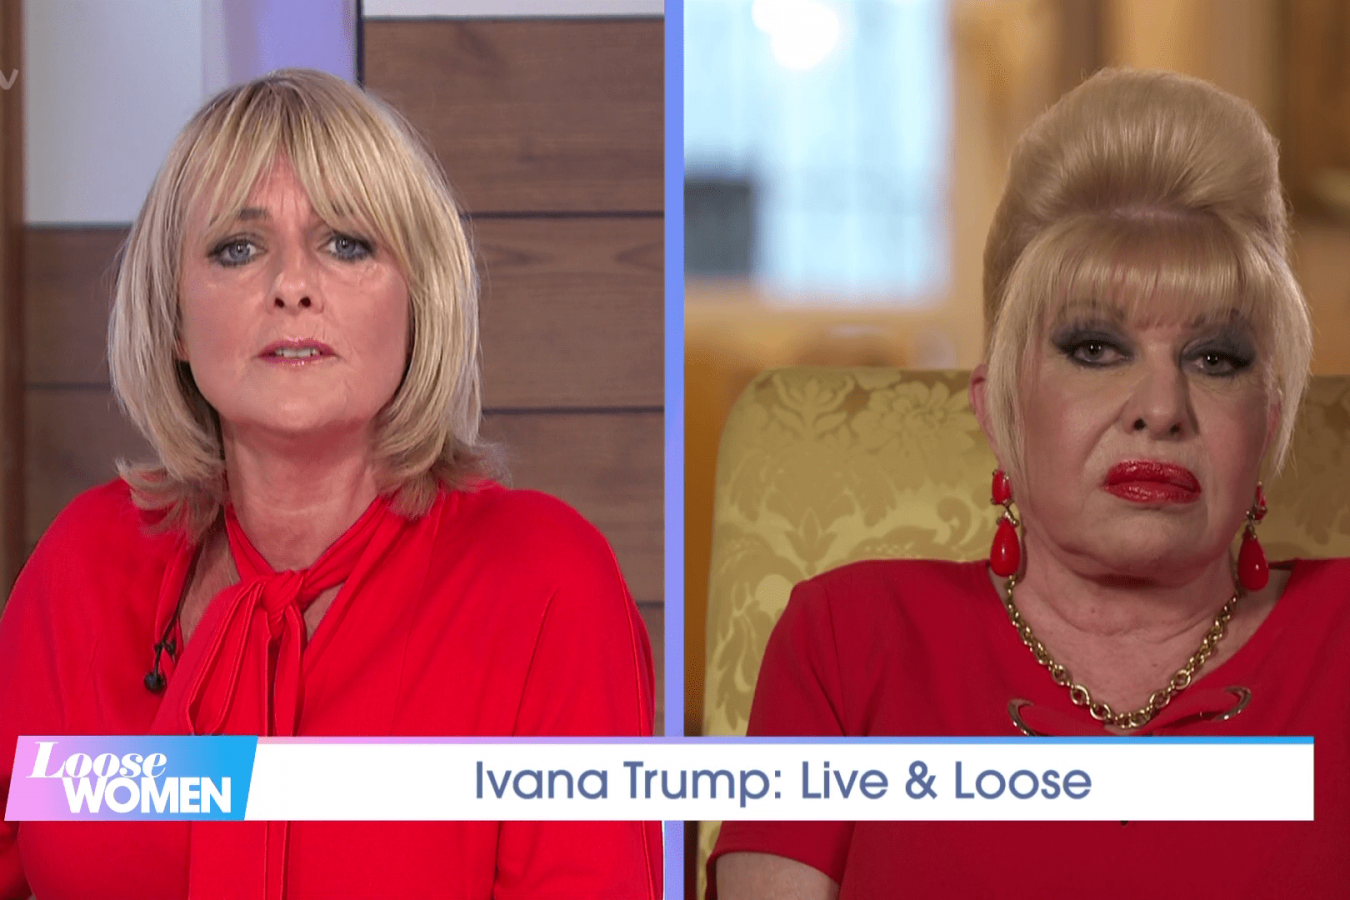 Ivana Trump on ITV's Loose Women 14 September 2020